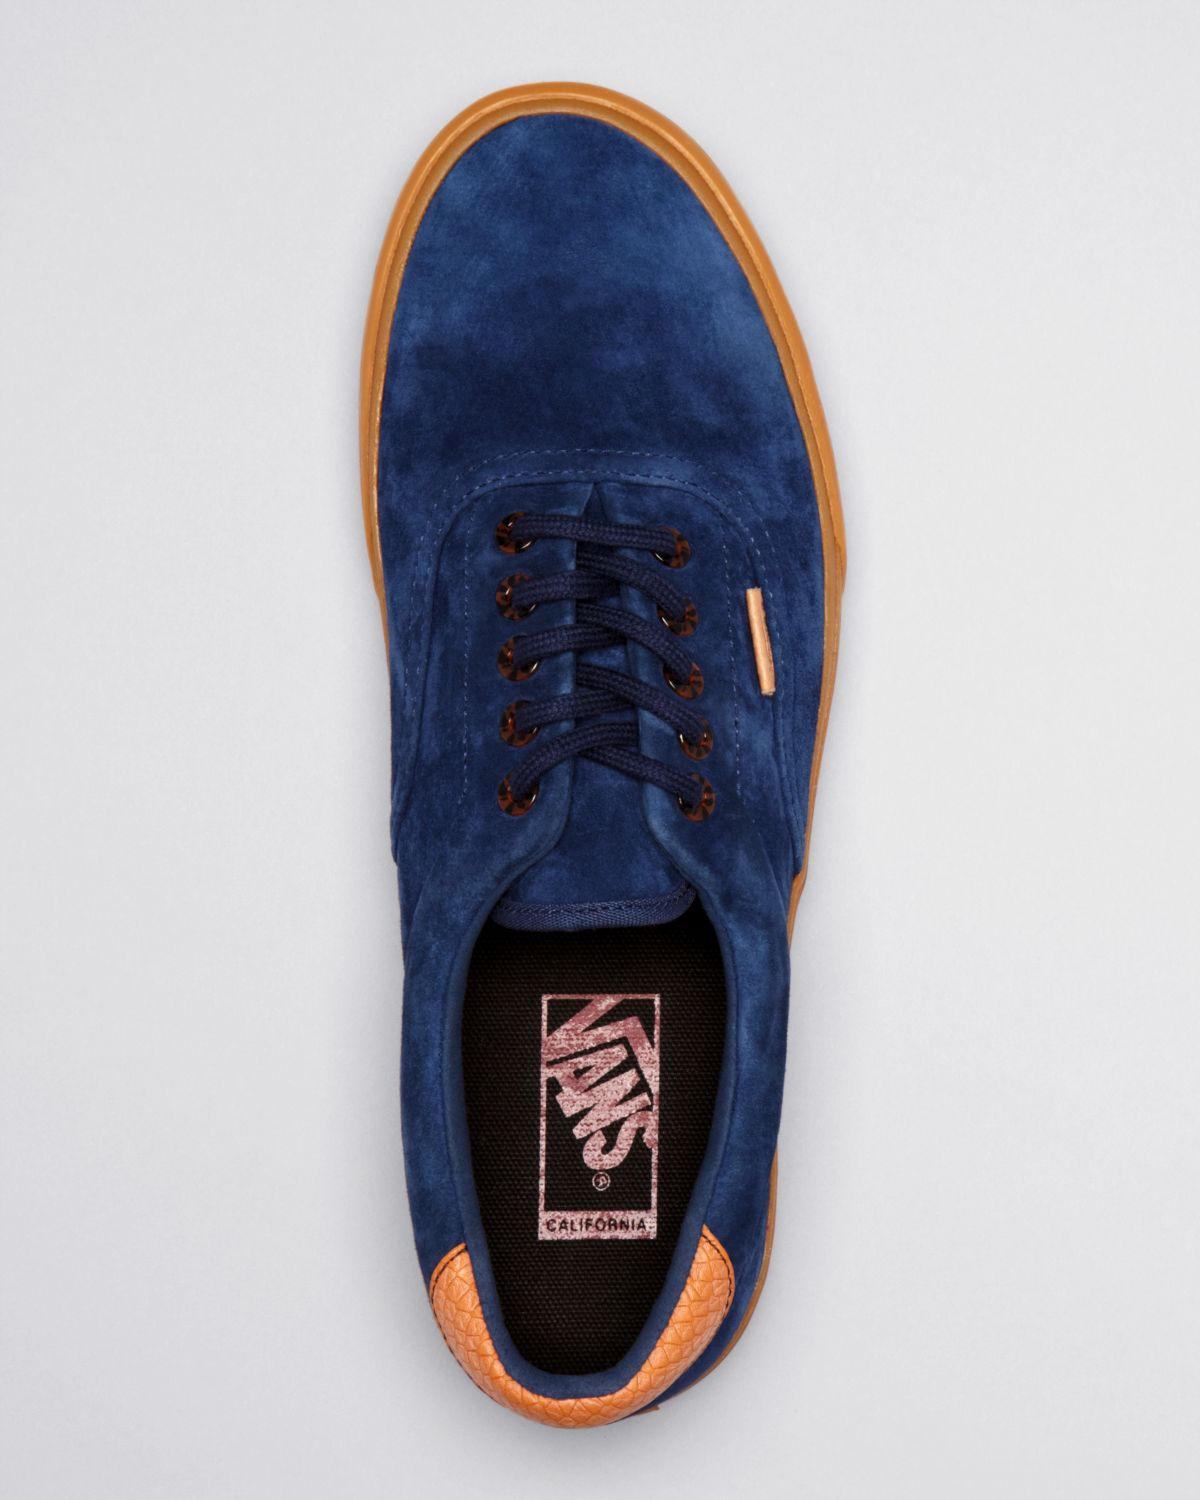 Lyst Vans Suede Era 59 Gum Sole Sneakers In Blue For Men